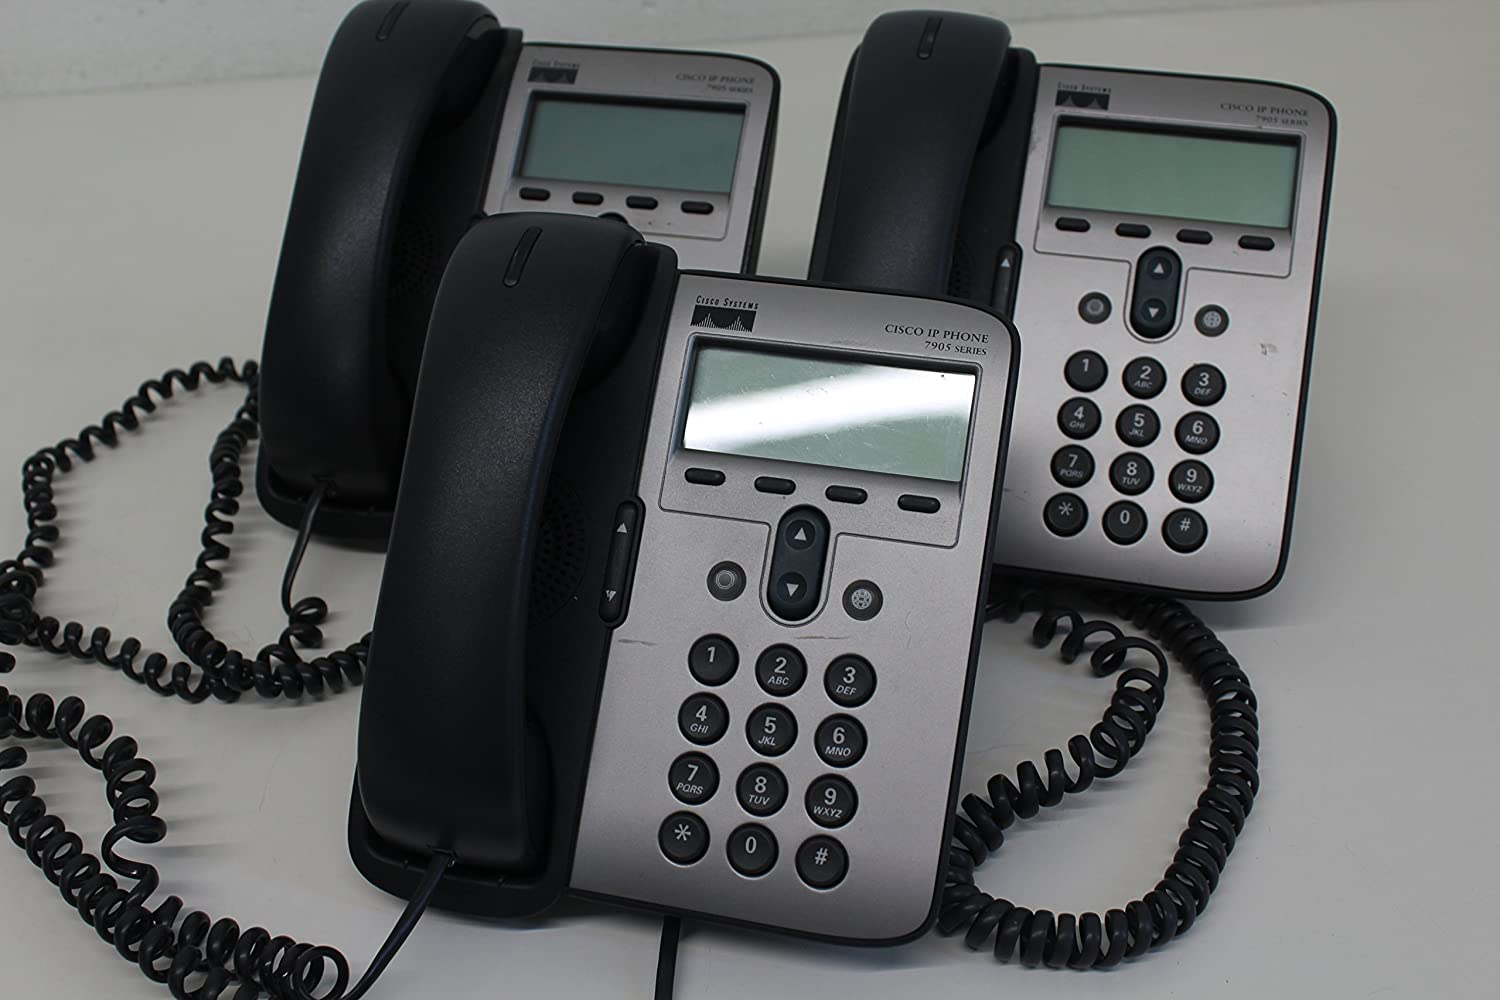 Cisco VOIP Unified IP Phone - CP-7905G POE, Requires Cisco CallManager